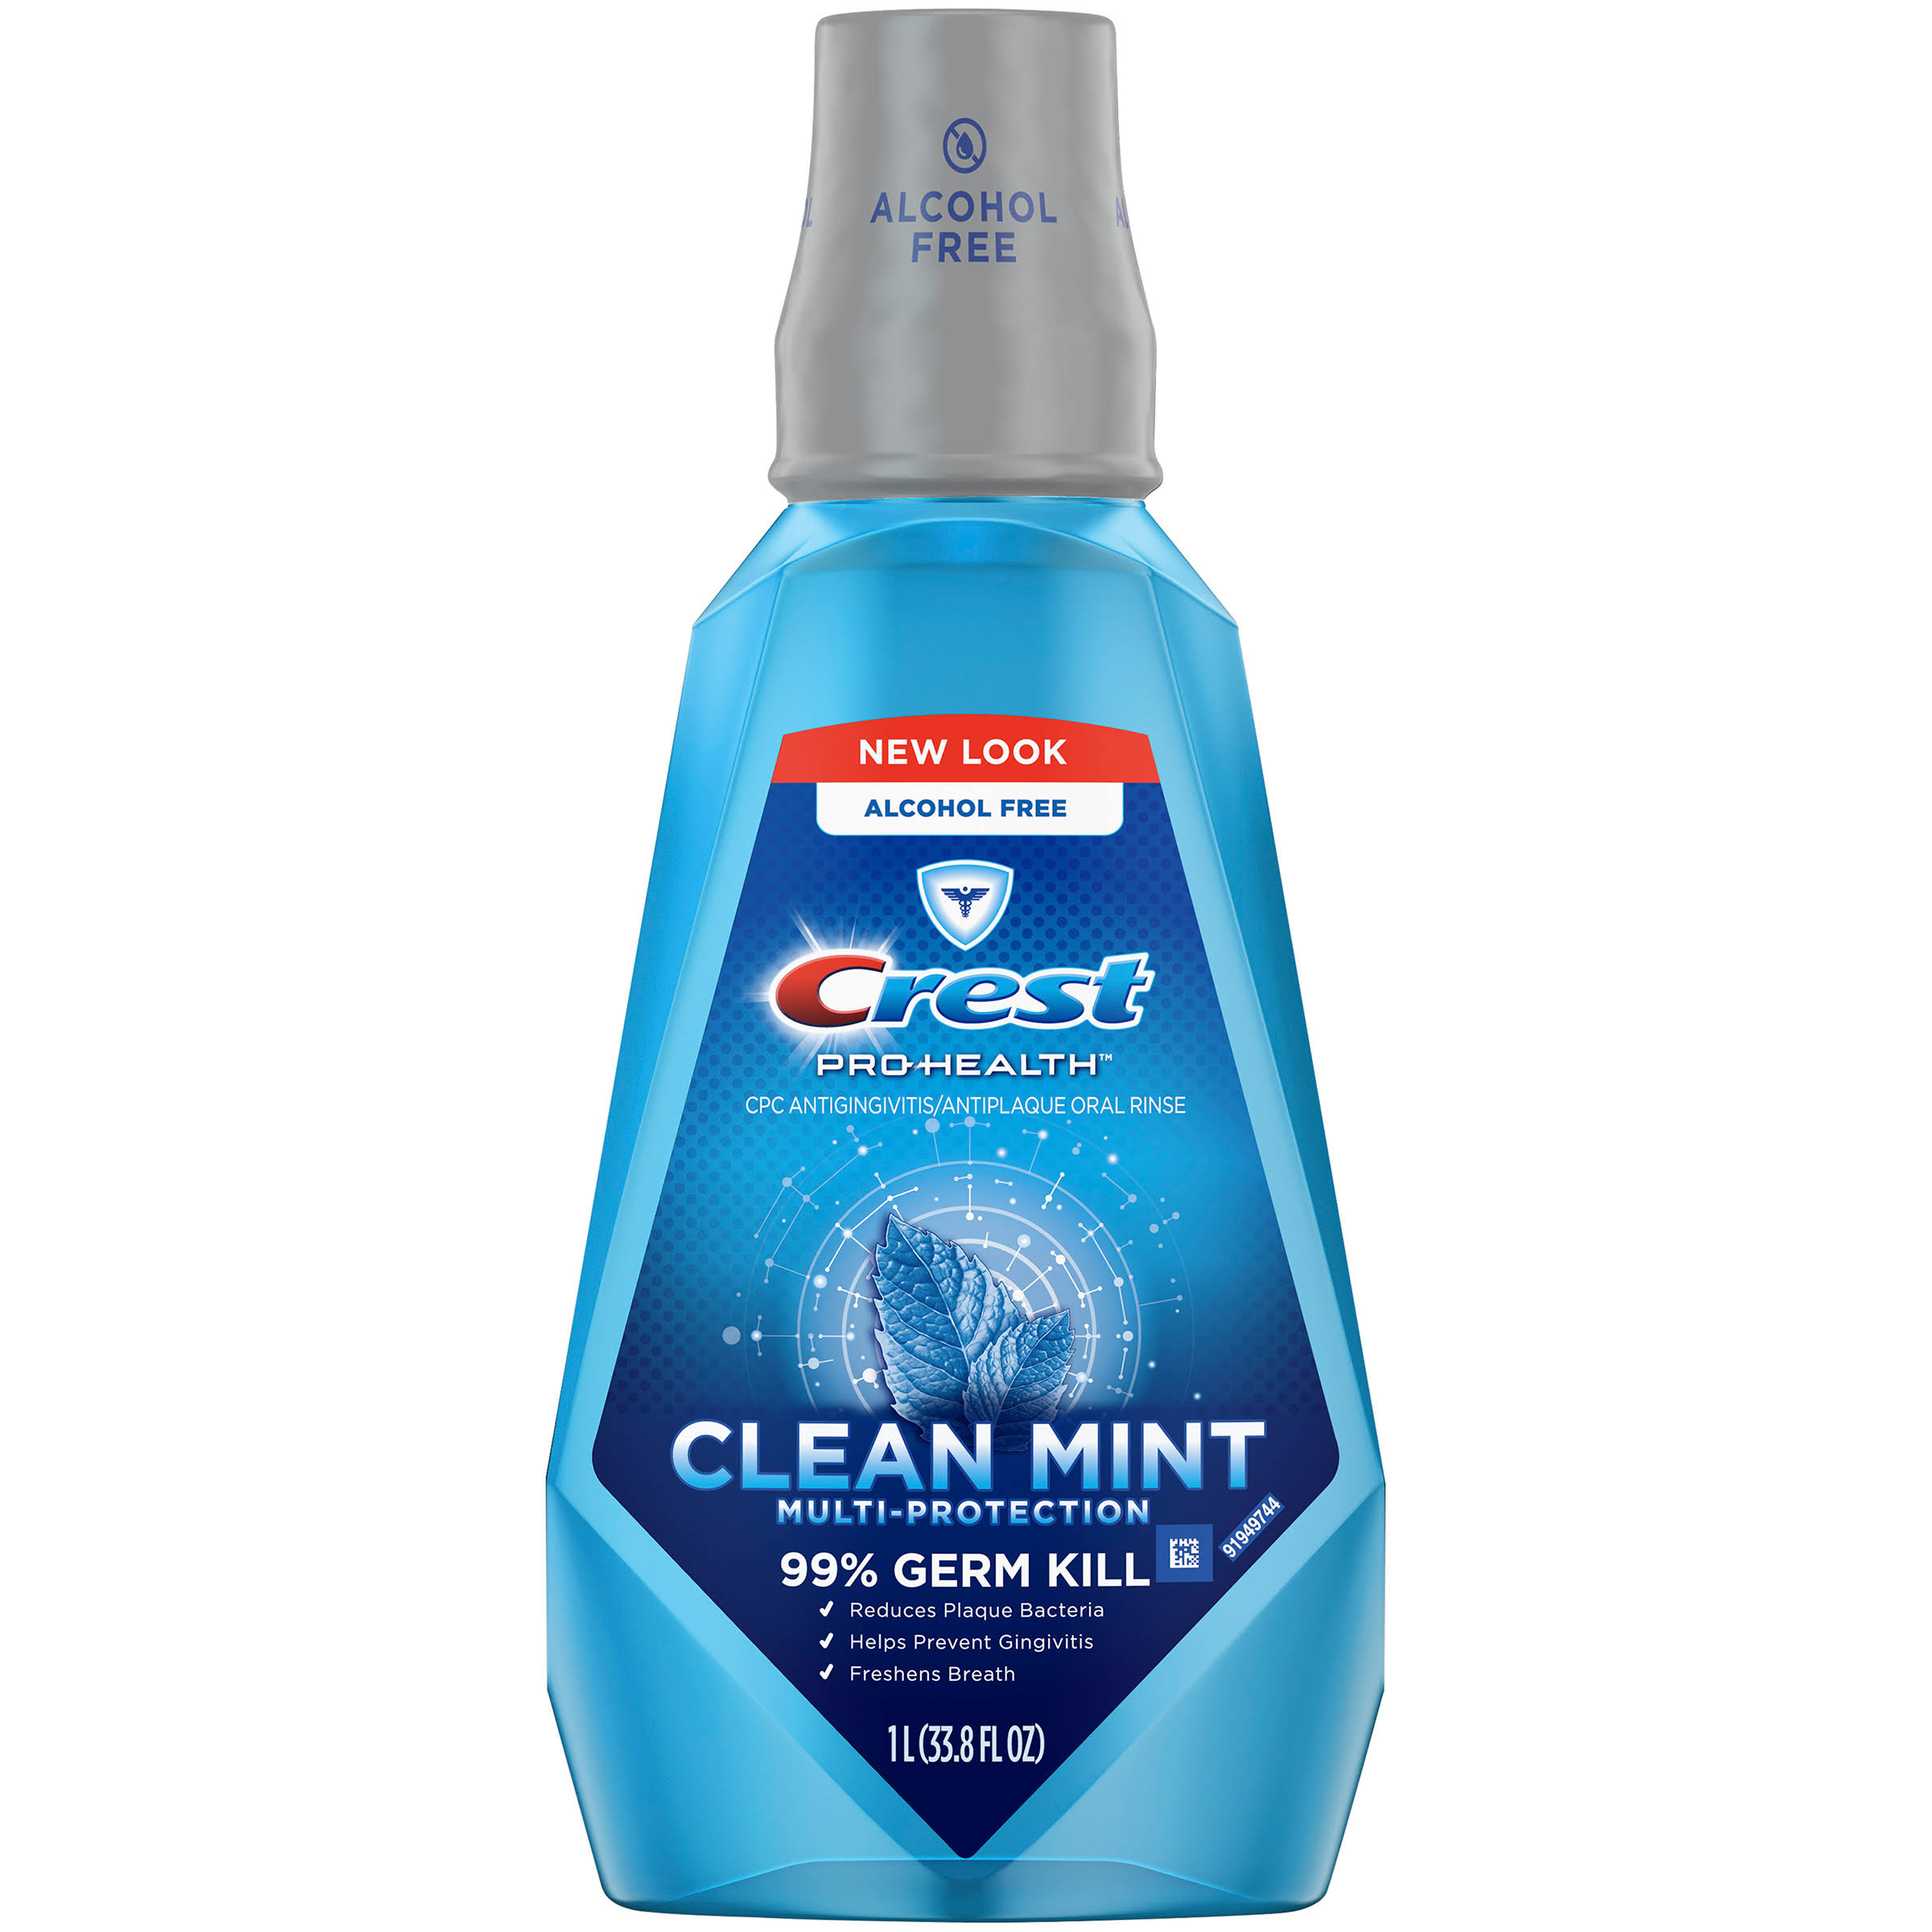 Crest Pro-Health Multi-Protection Mouthwash - Clean Mint, 1l